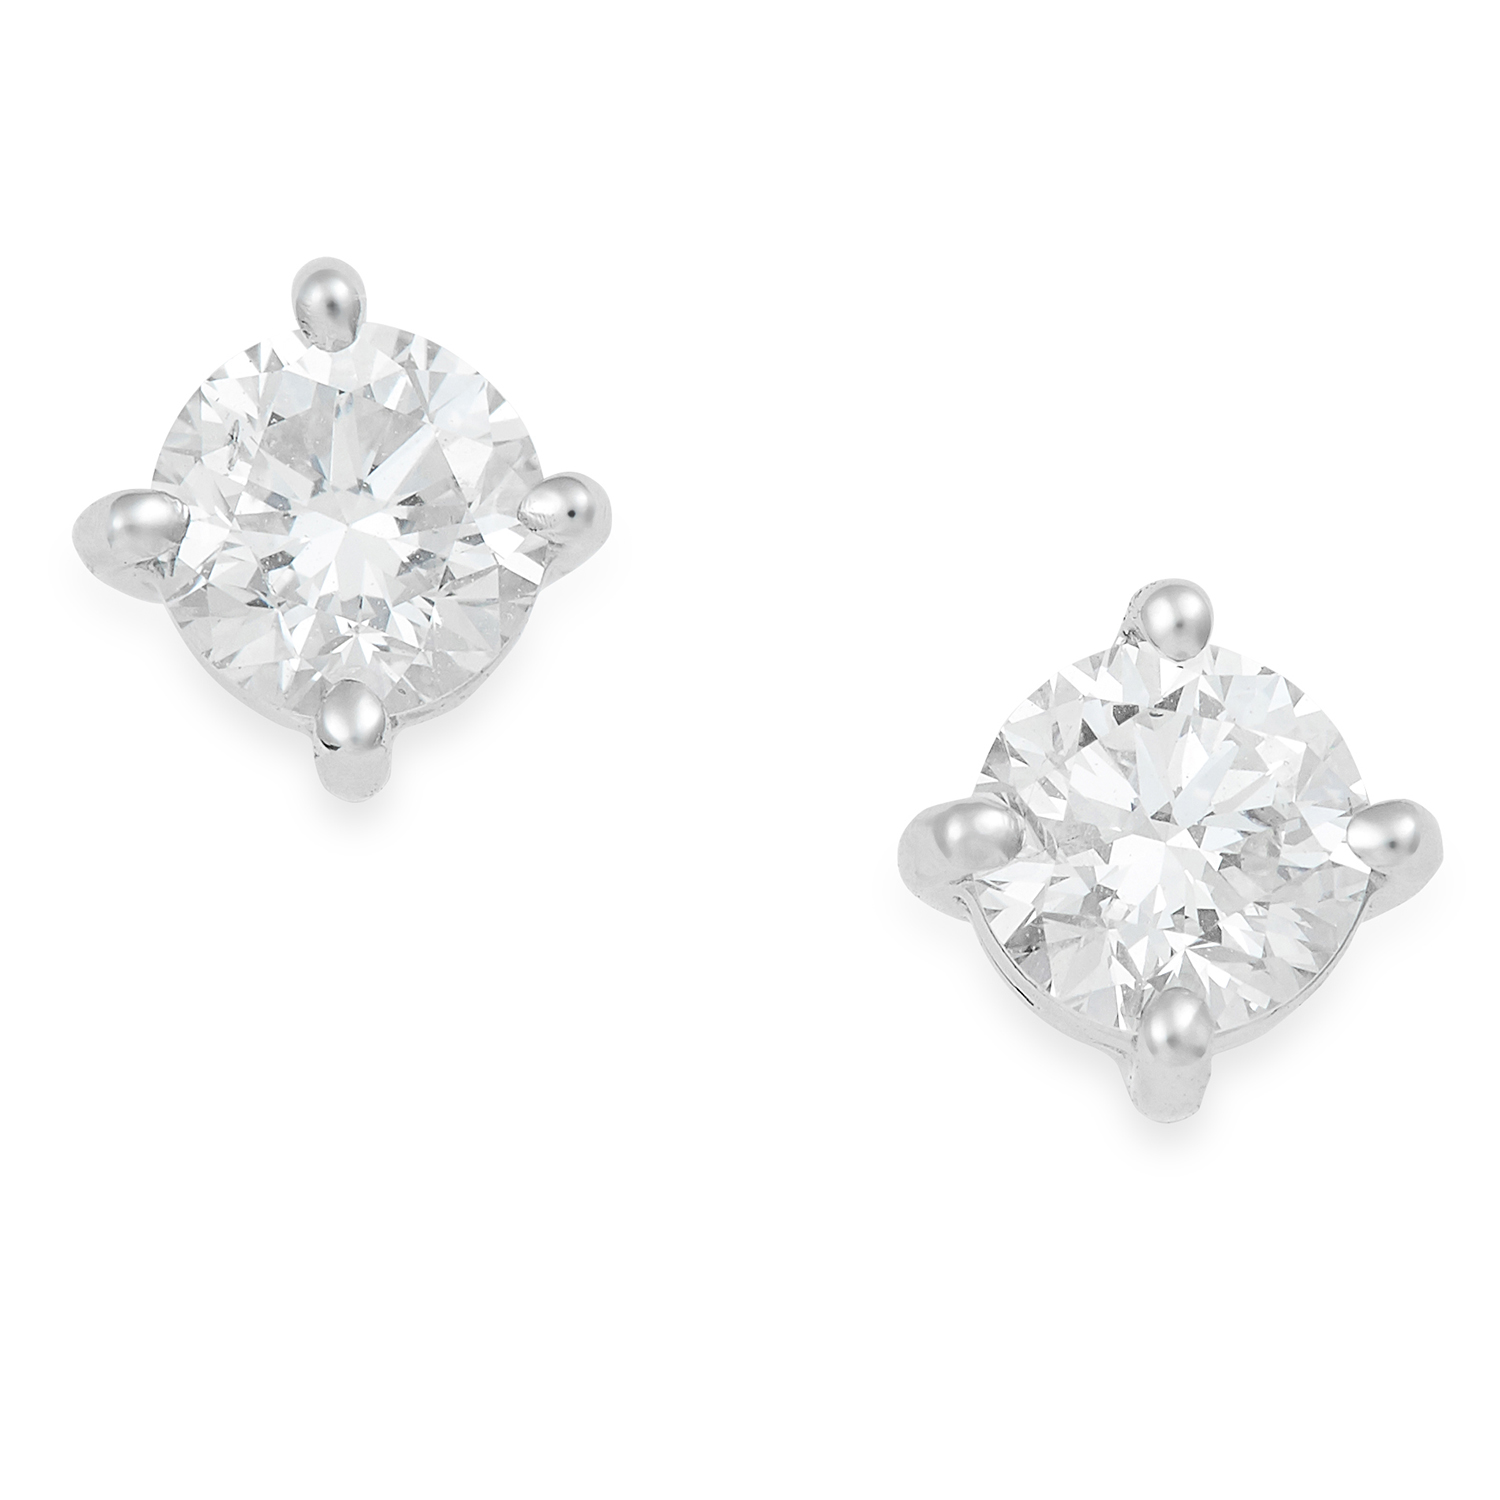 0.50 CARAT DIAMOND EAR STUDS in 18ct white gold, each set with a round cut diamond totalling